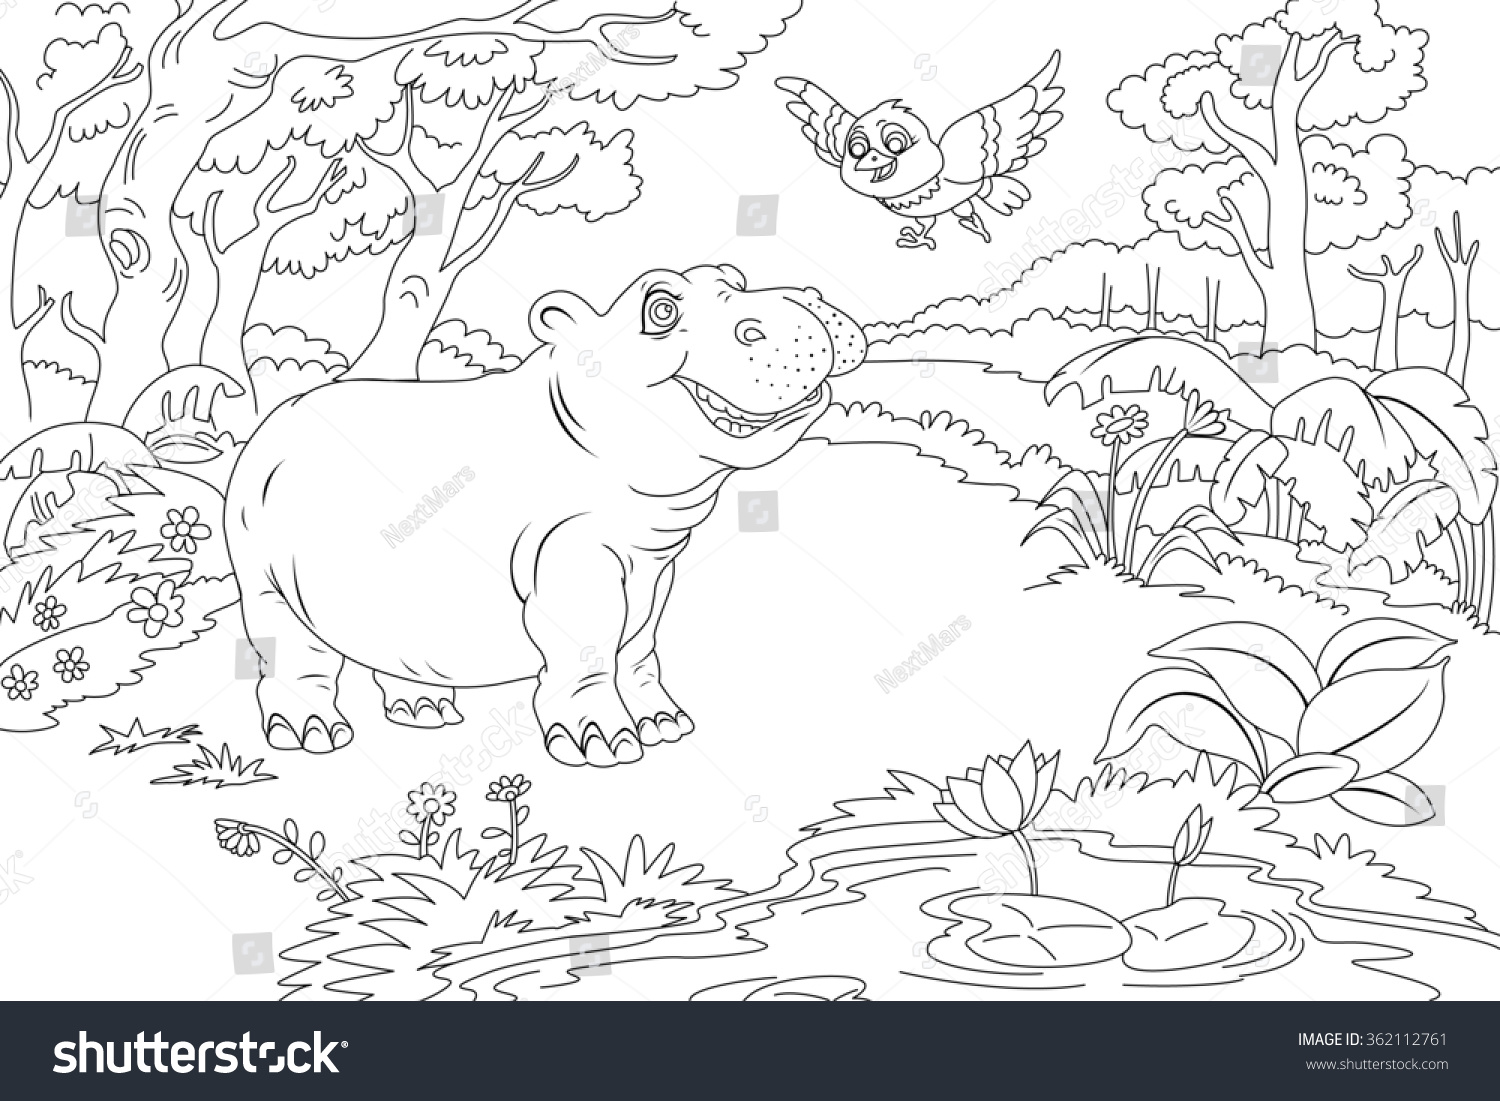 Coloring Pages Adults Birds : Line art coloring book illustration children stock illustration